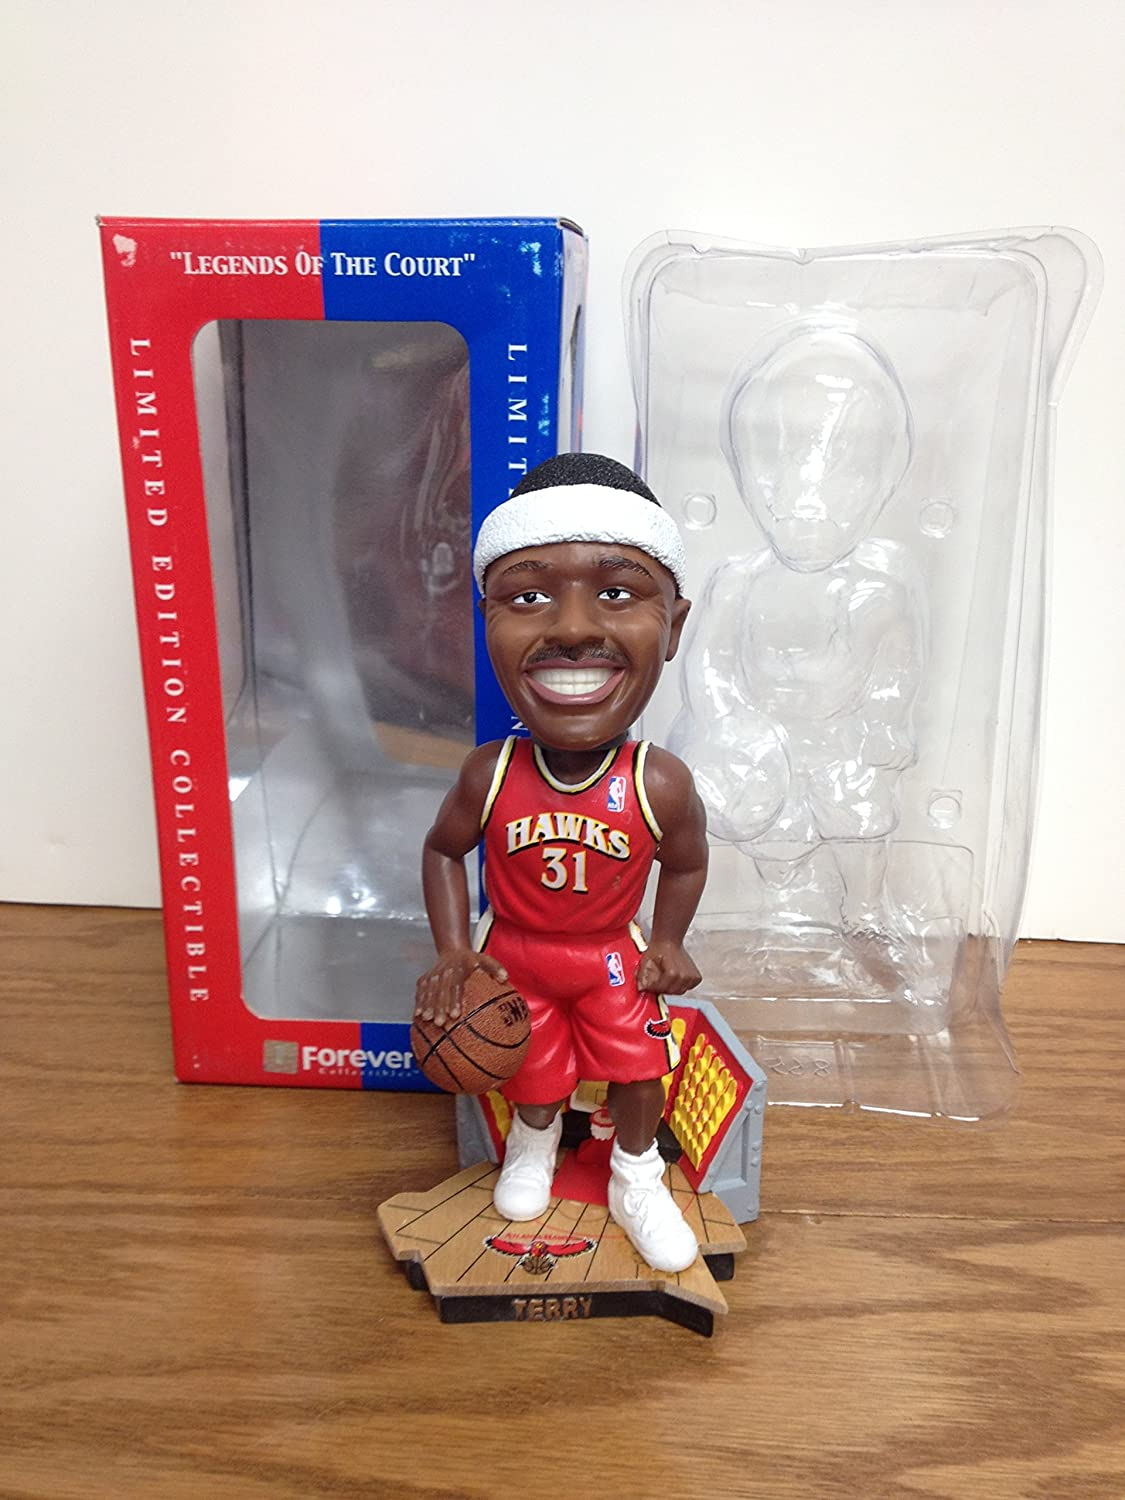 JASON TERRY 'THE HAWK' Legends of the Court ATLANTA HAWKS NBA Bobblehead Bobble Forever